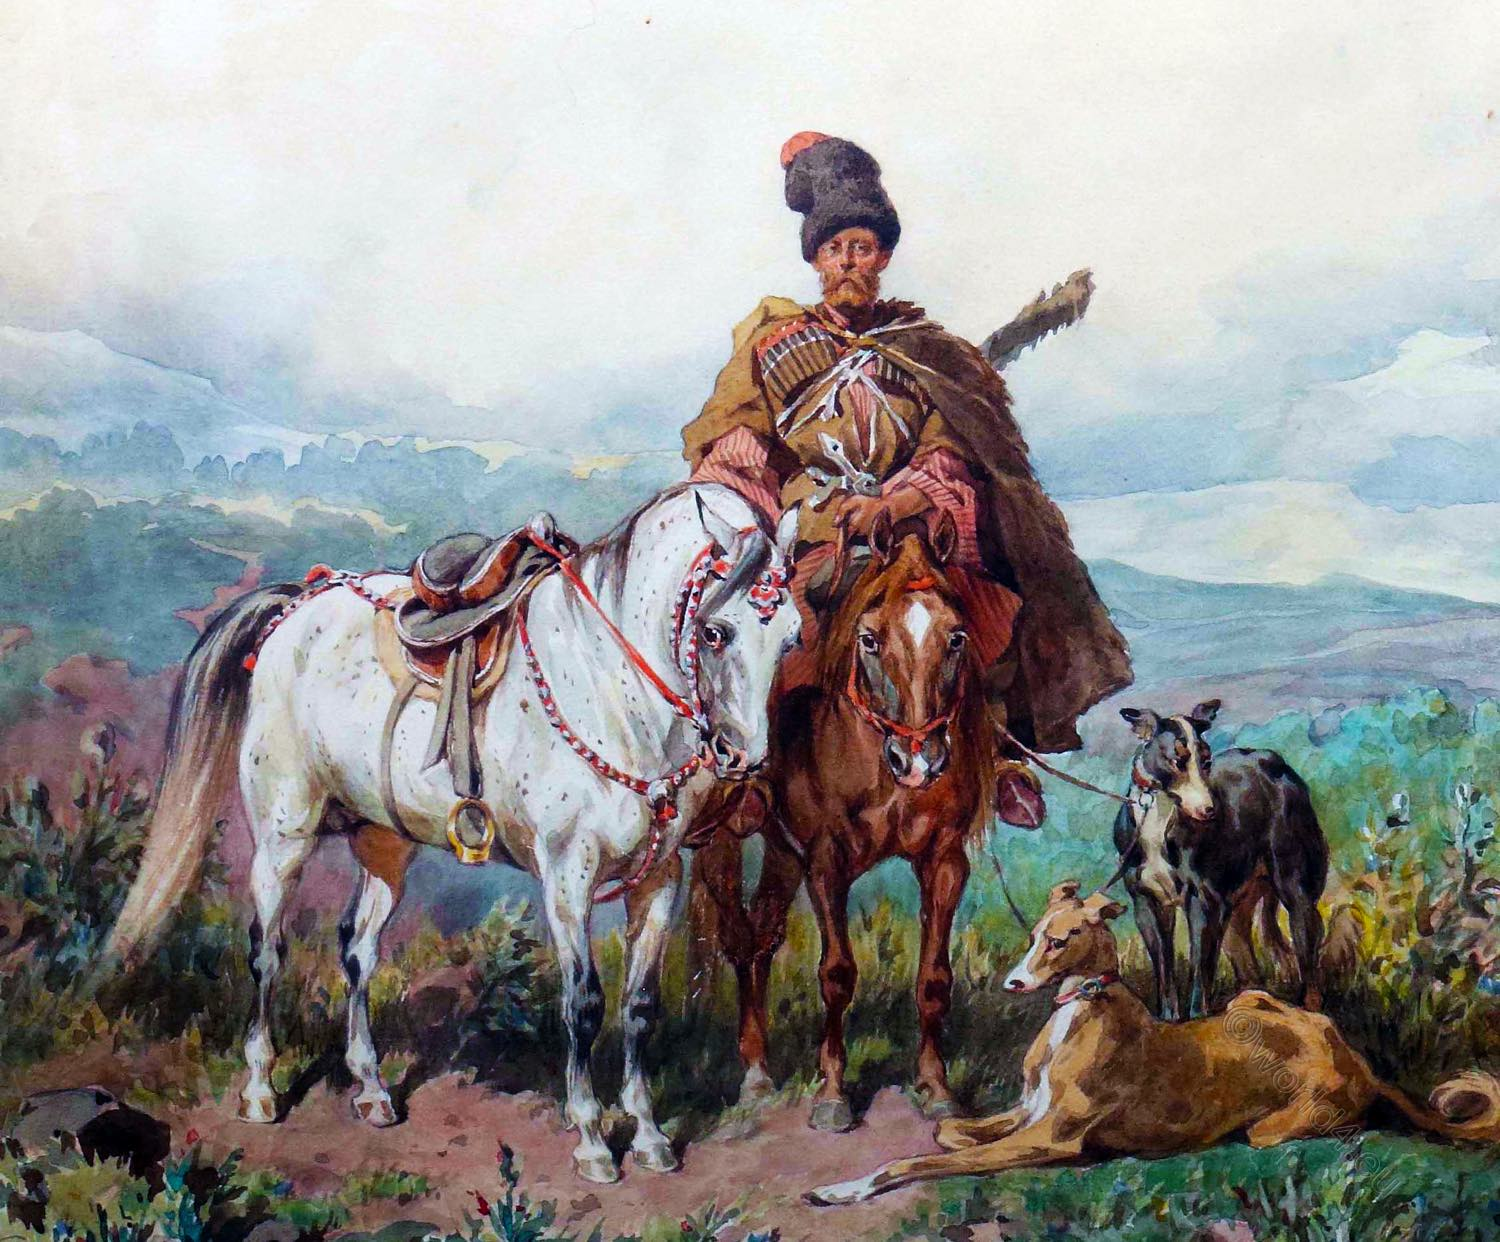 Cossack, horseback, painting, Art,  Juliusz Fortunat Kossak,